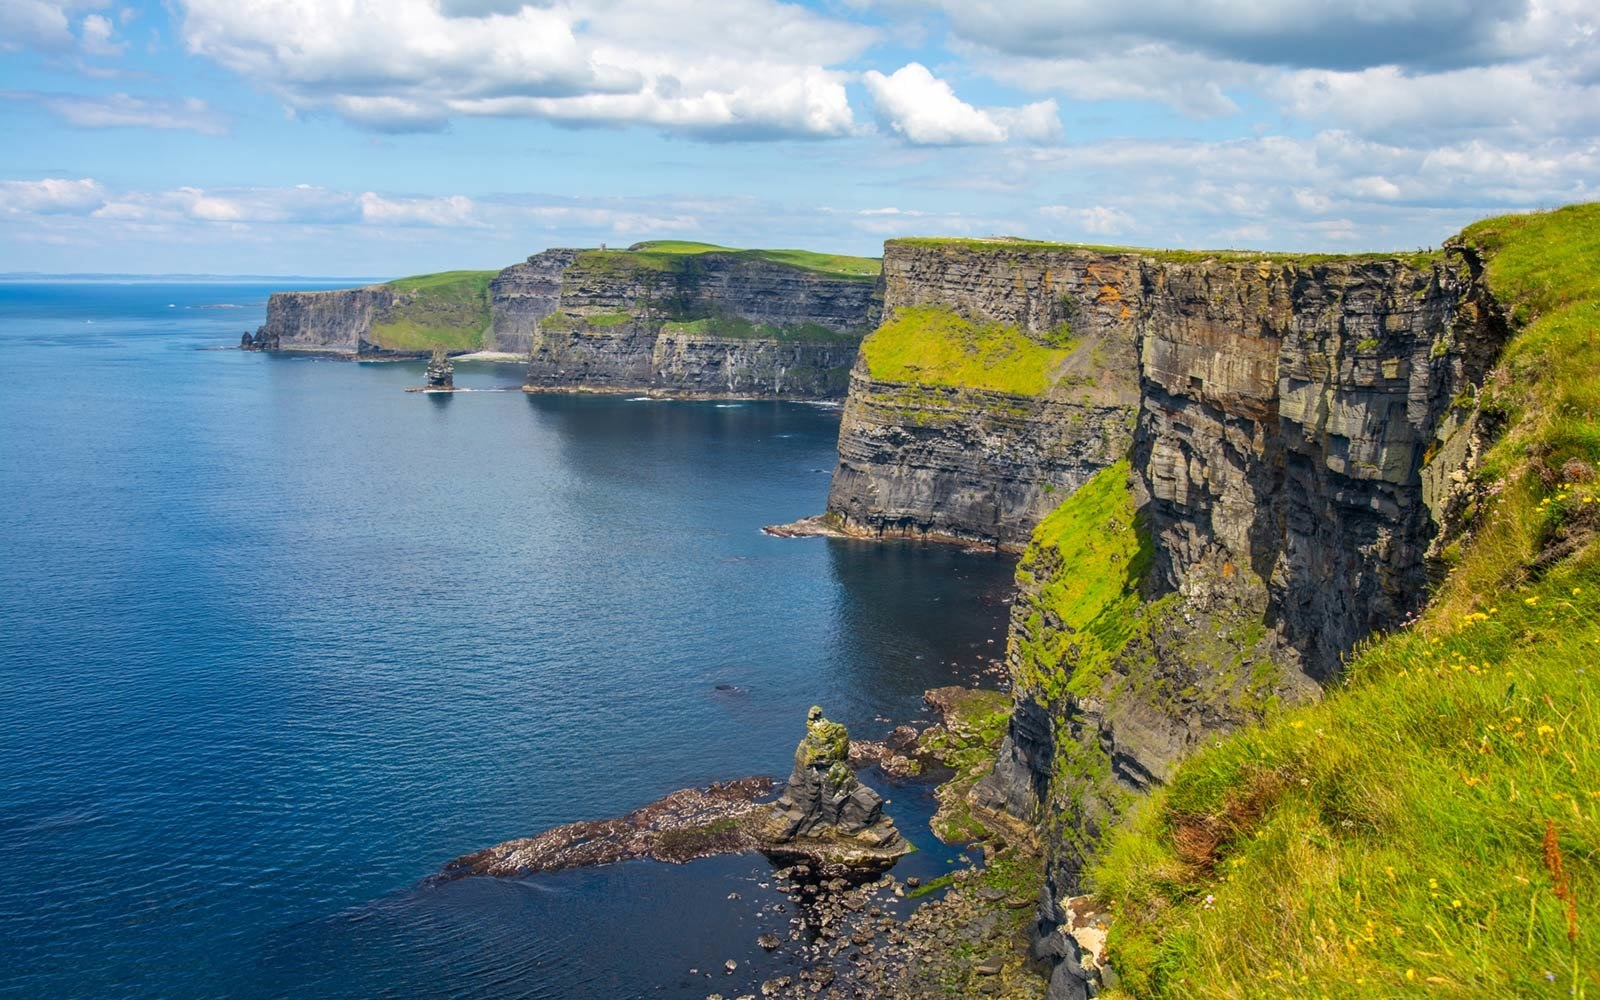 cliffs-of-moher-landscape-county-clare-ireland-MOHER0321